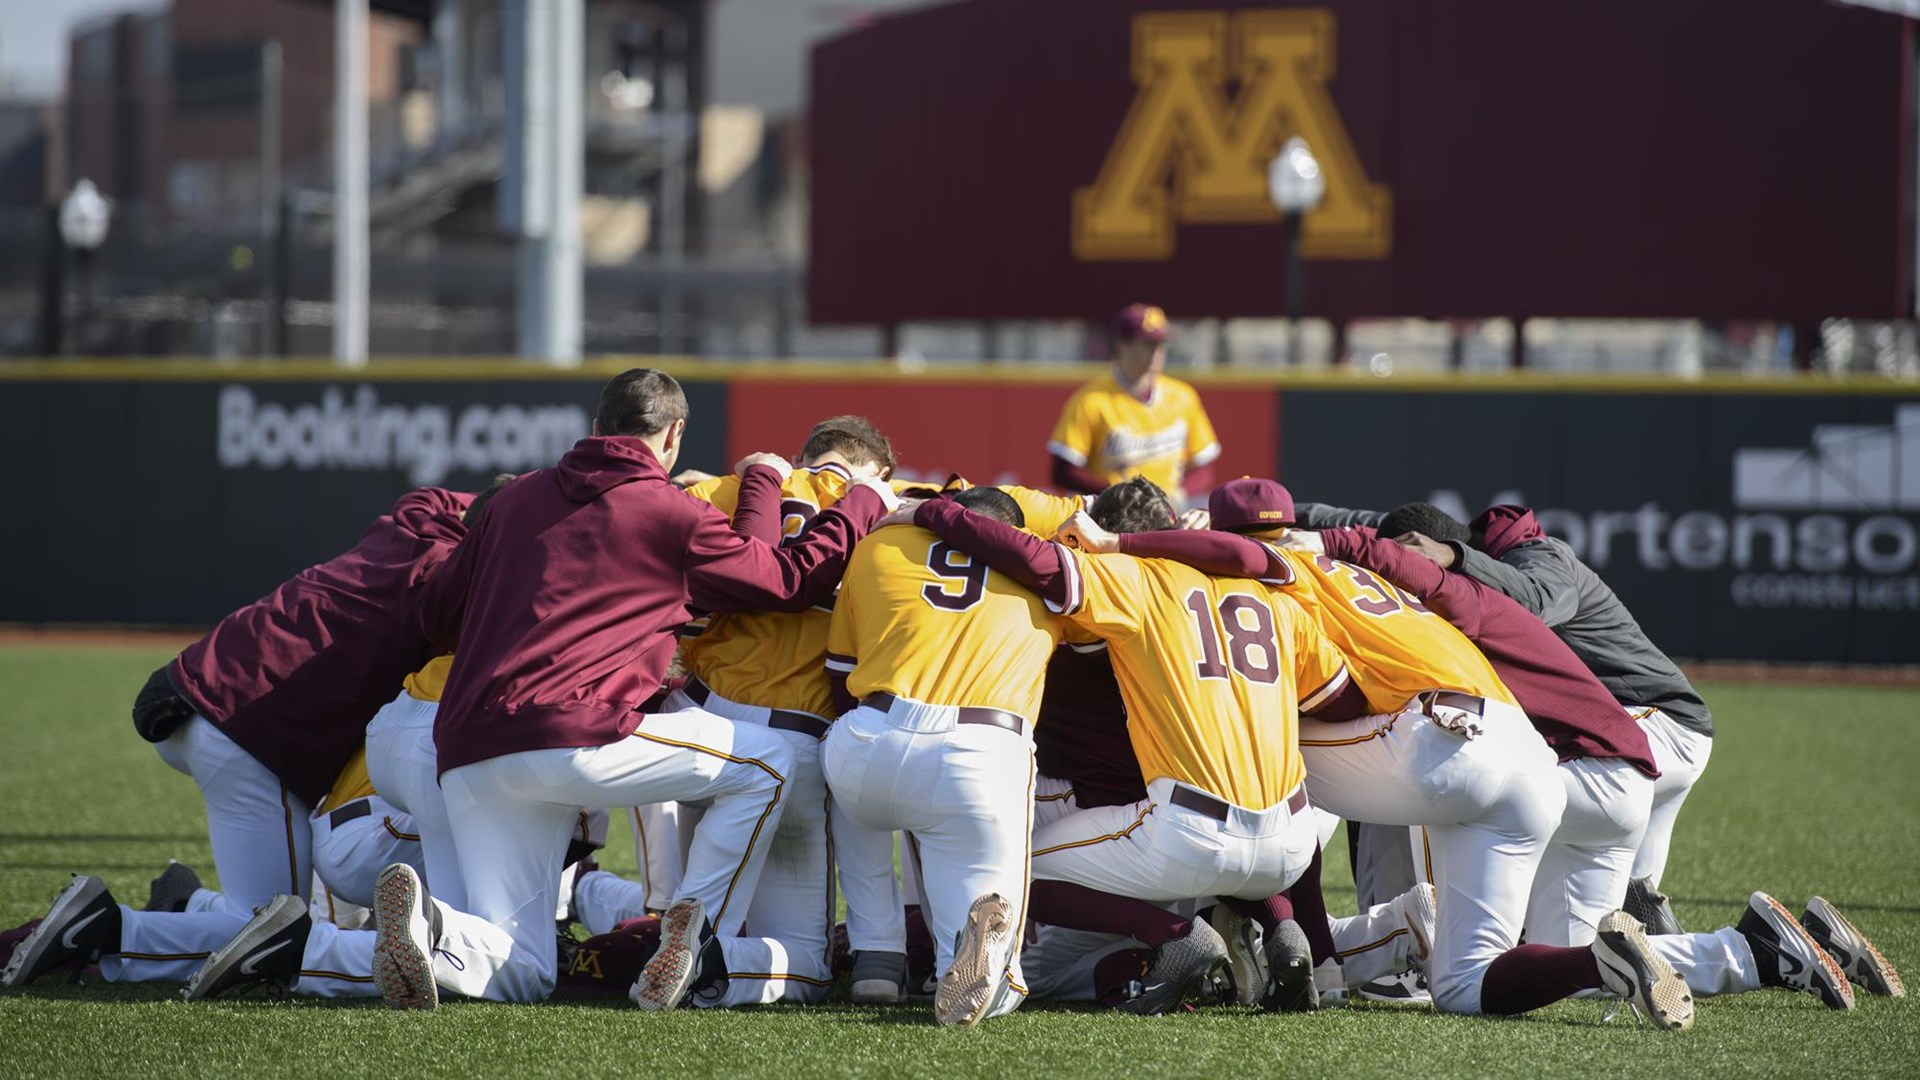 33aee54c24e Preview  Gophers Meet Michigan on BTN Friday Afternoon - University ...